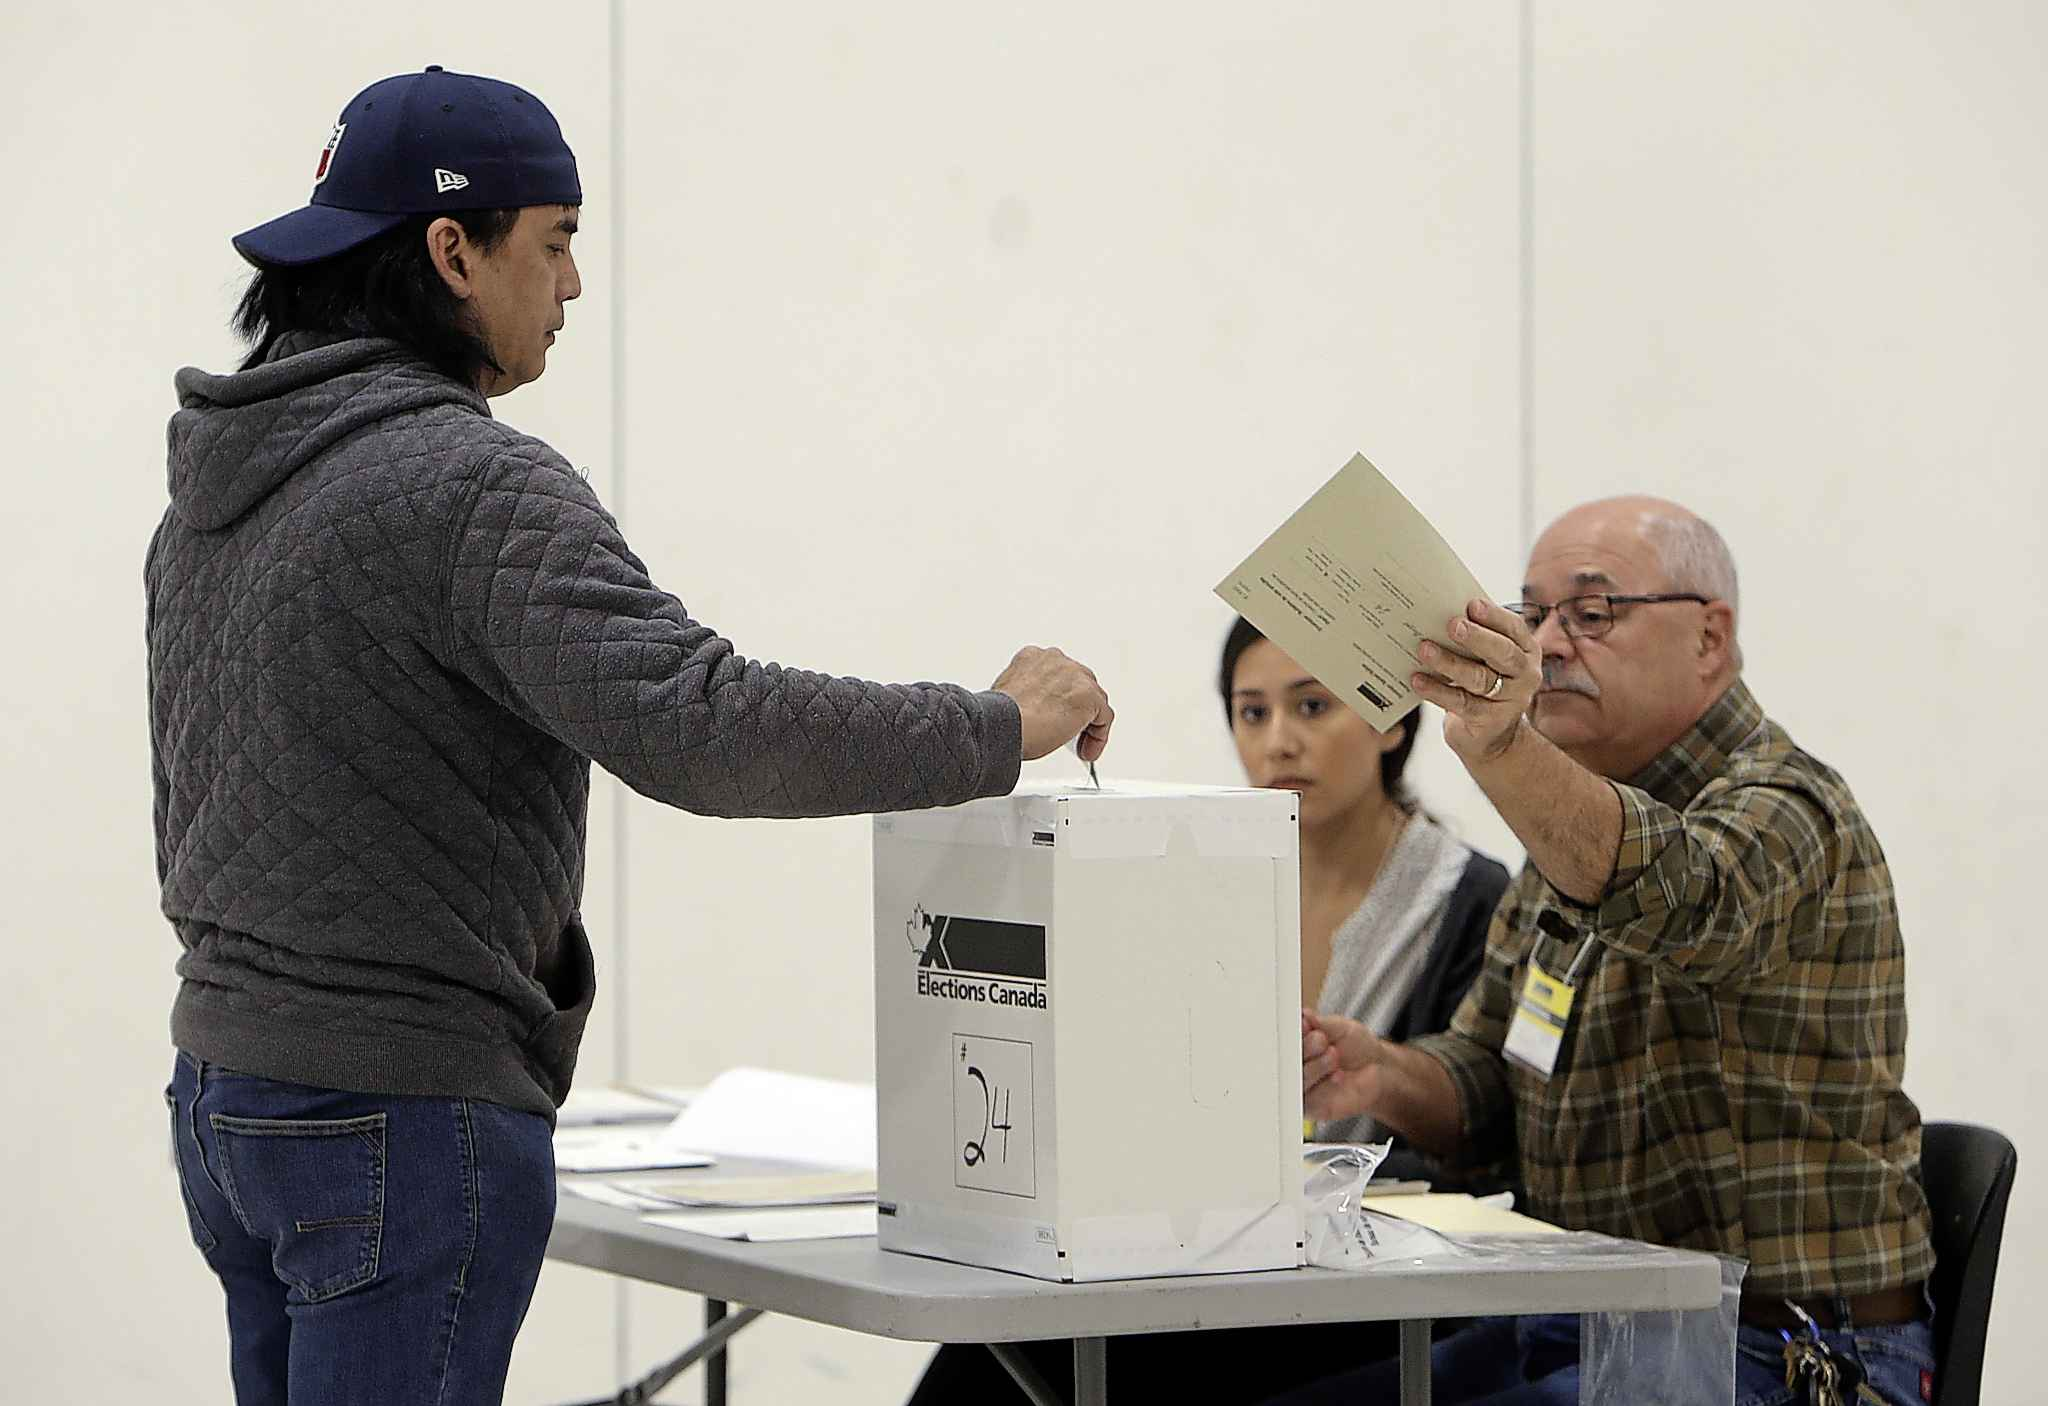 Fernando Garcia was at his pollsing station early to cast his ballot. Polling stations are open in Manitoba until 8:30 p.m. (Jason Halstead / Winnipeg Free Press)